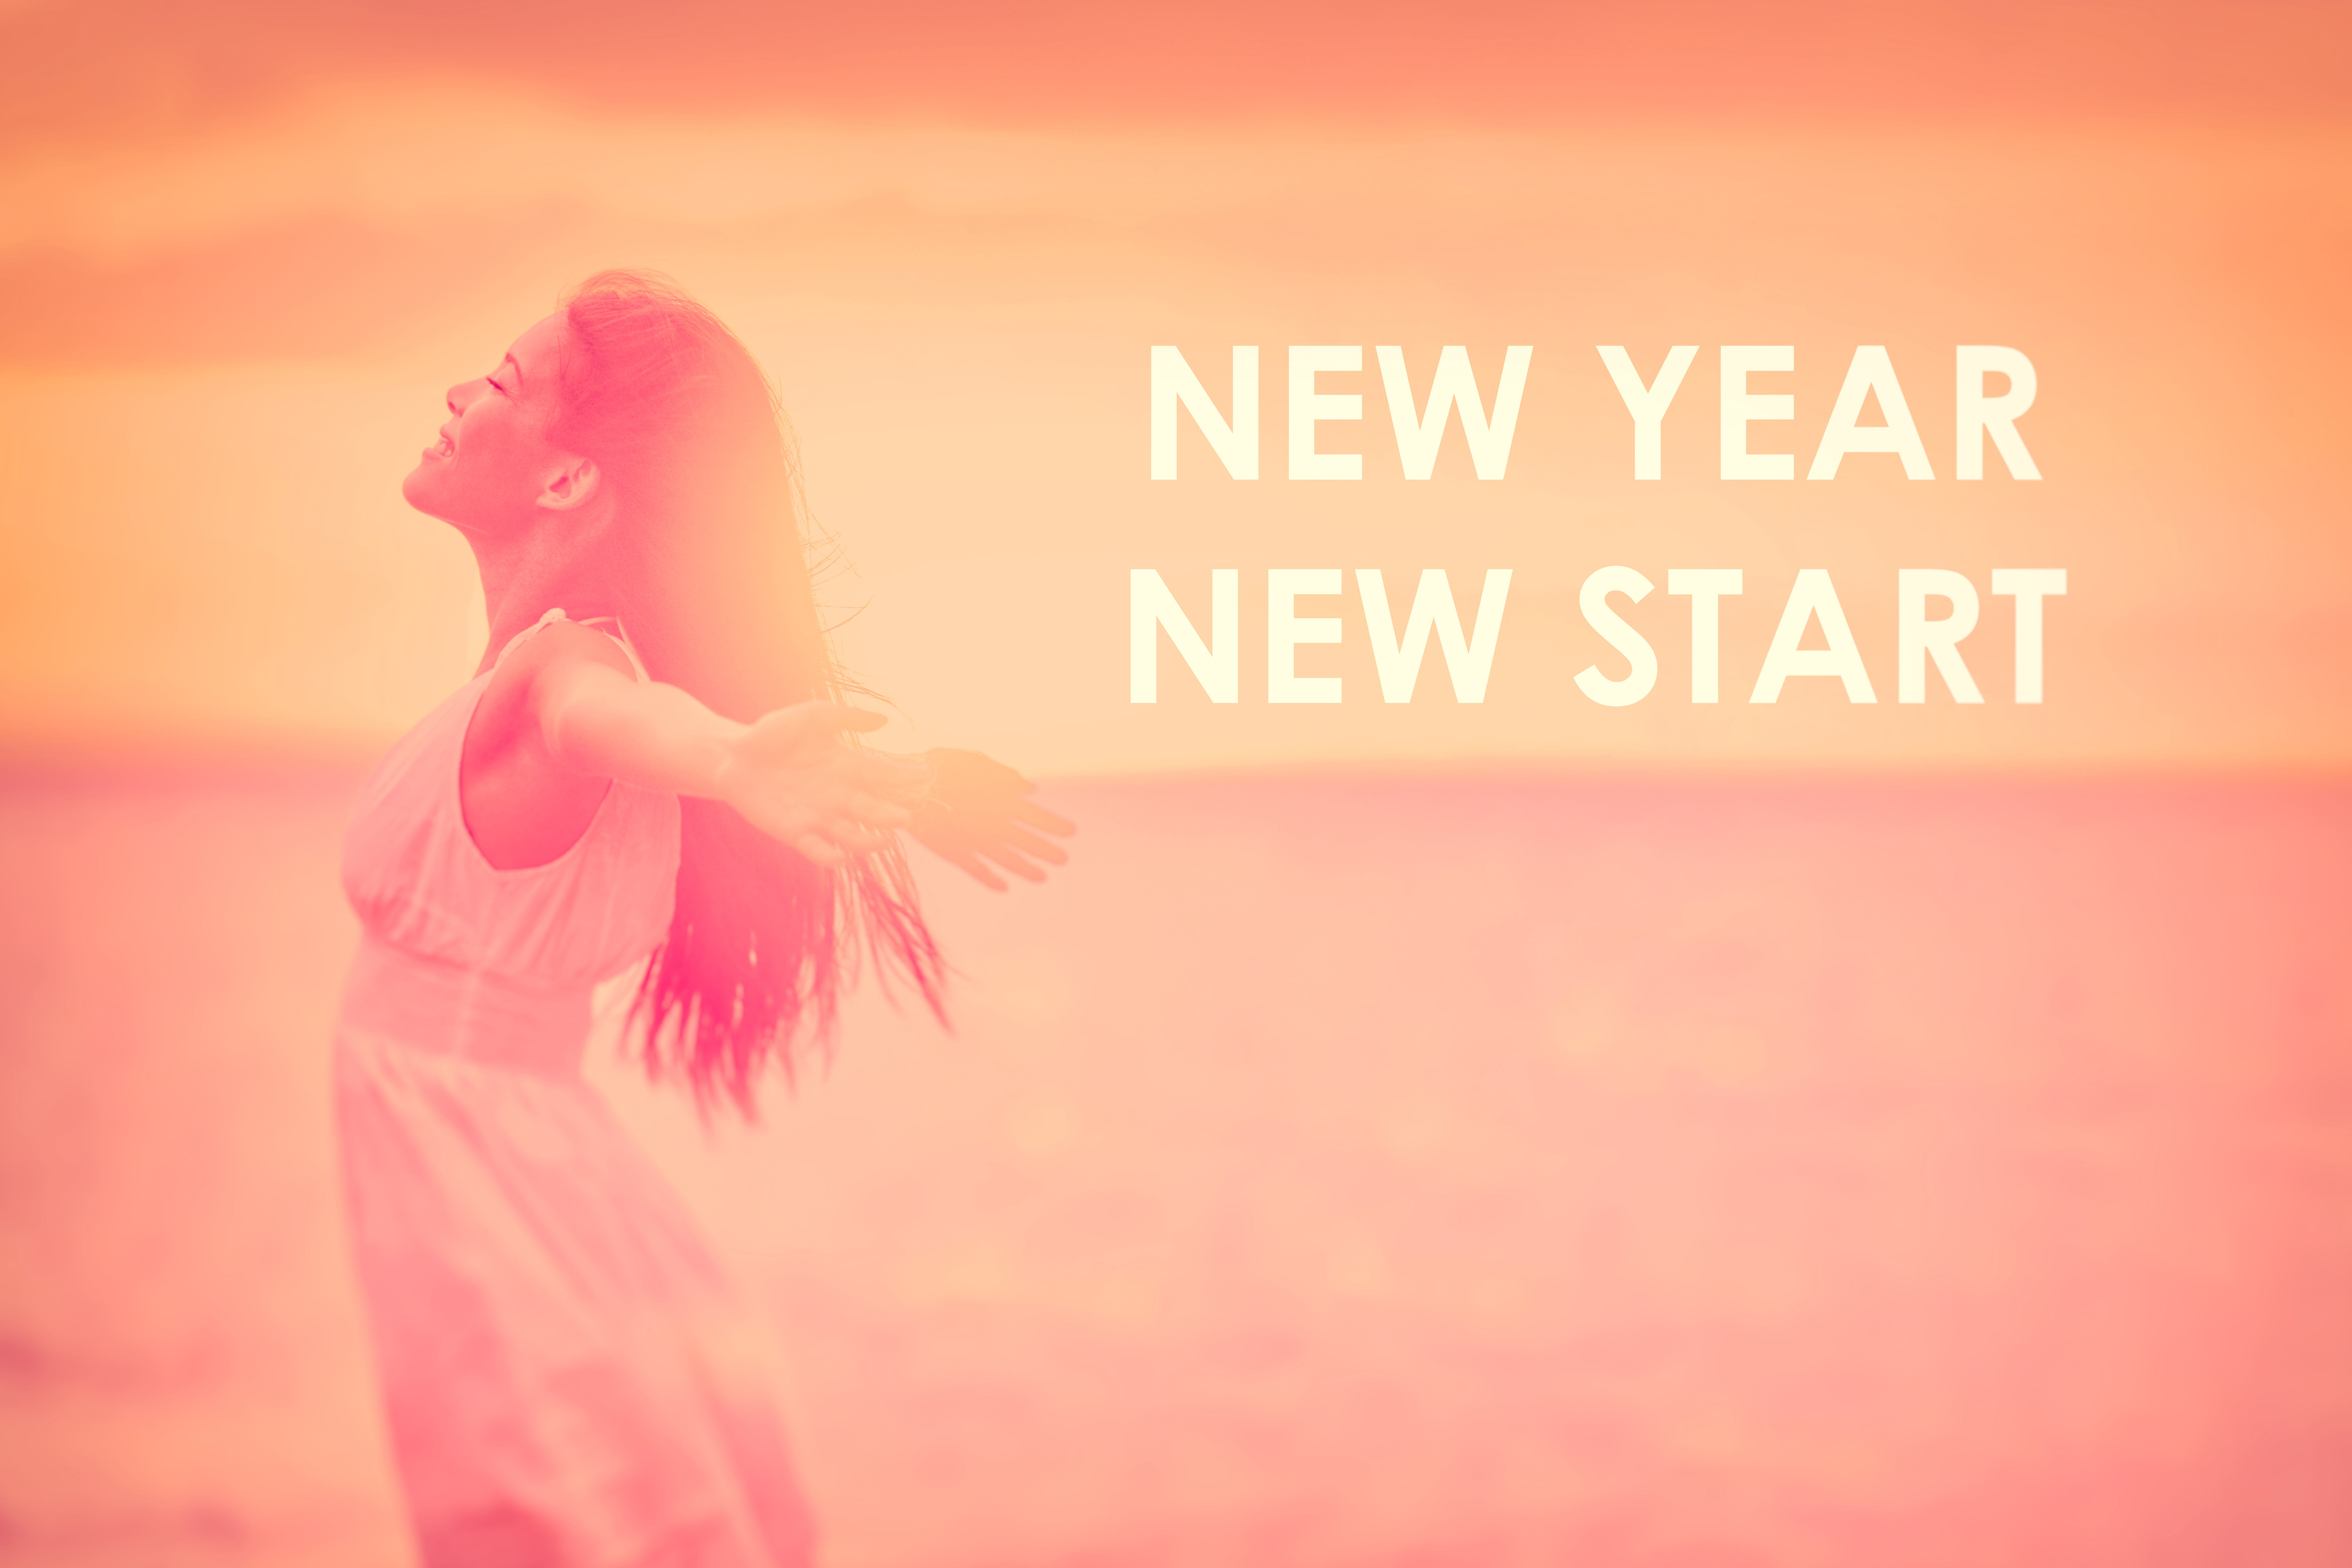 Top 25 New Year's Resolutions - Start Your Resolutions Anytime!